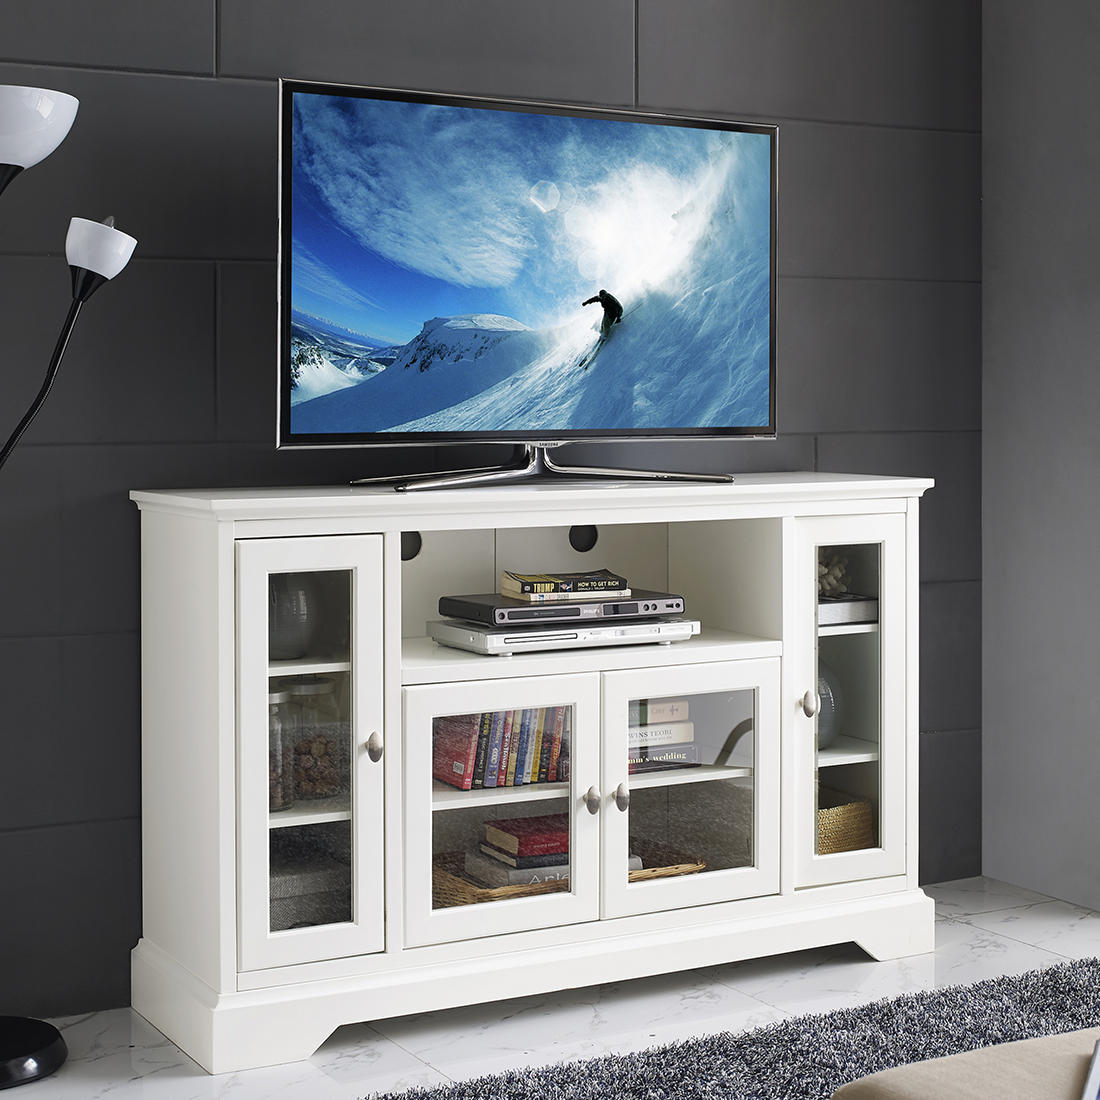 W Trends Highboy 52 Wood Tv Media Stand With Storage For Tvs Up To 55 White